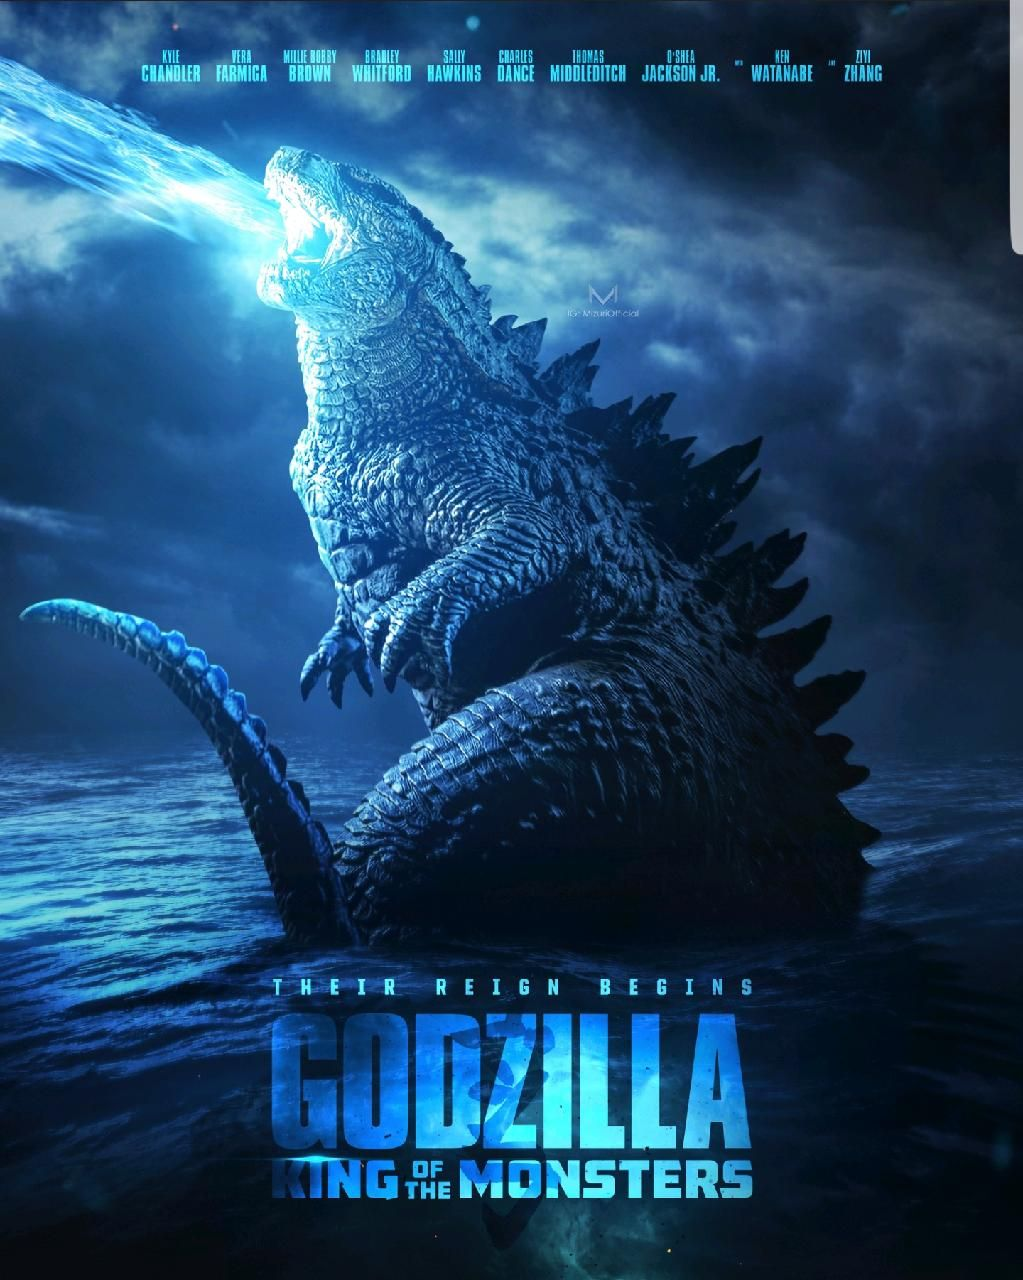 Download Godzilla Wallpaper By Silverbull735 C5 Free On Zedge Now Browse Millions Of Popular Godzilla Wallpaper Godzilla Wallpaper Godzilla Kong Godzilla